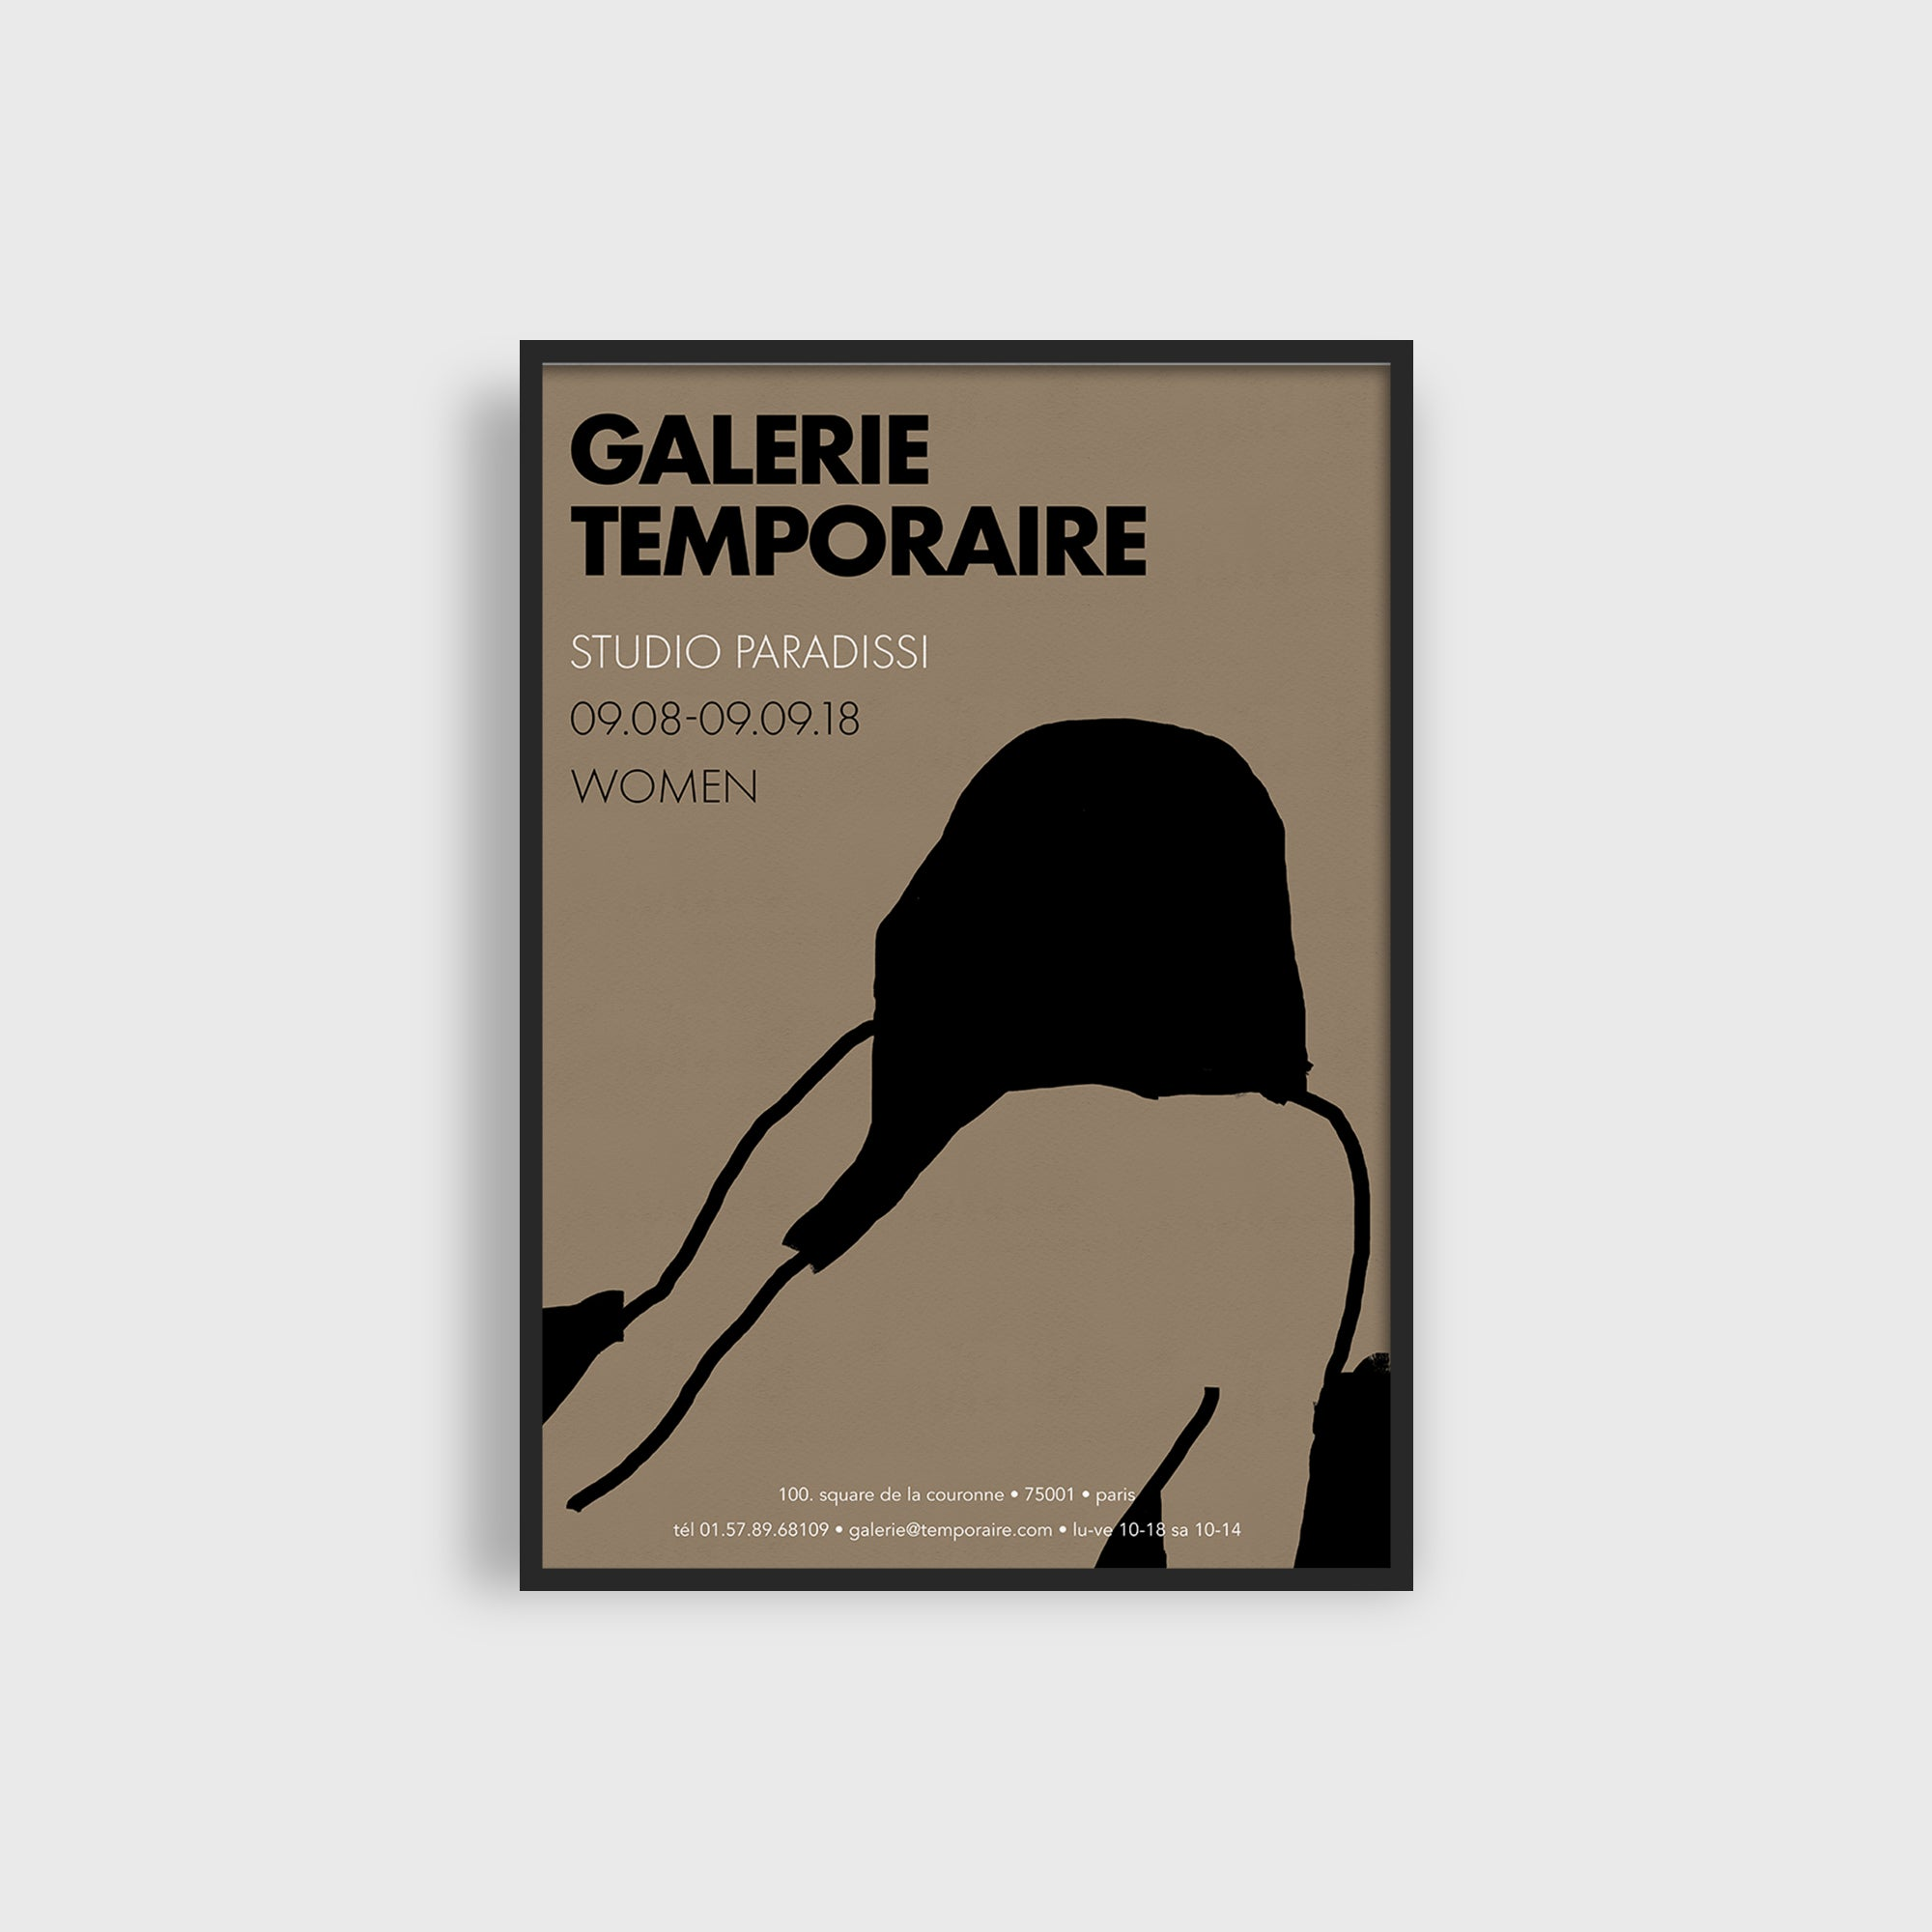 Galerie Temporaire 12 Open Edition Art Print by Eleni Psyllaki of Studio Paradissi